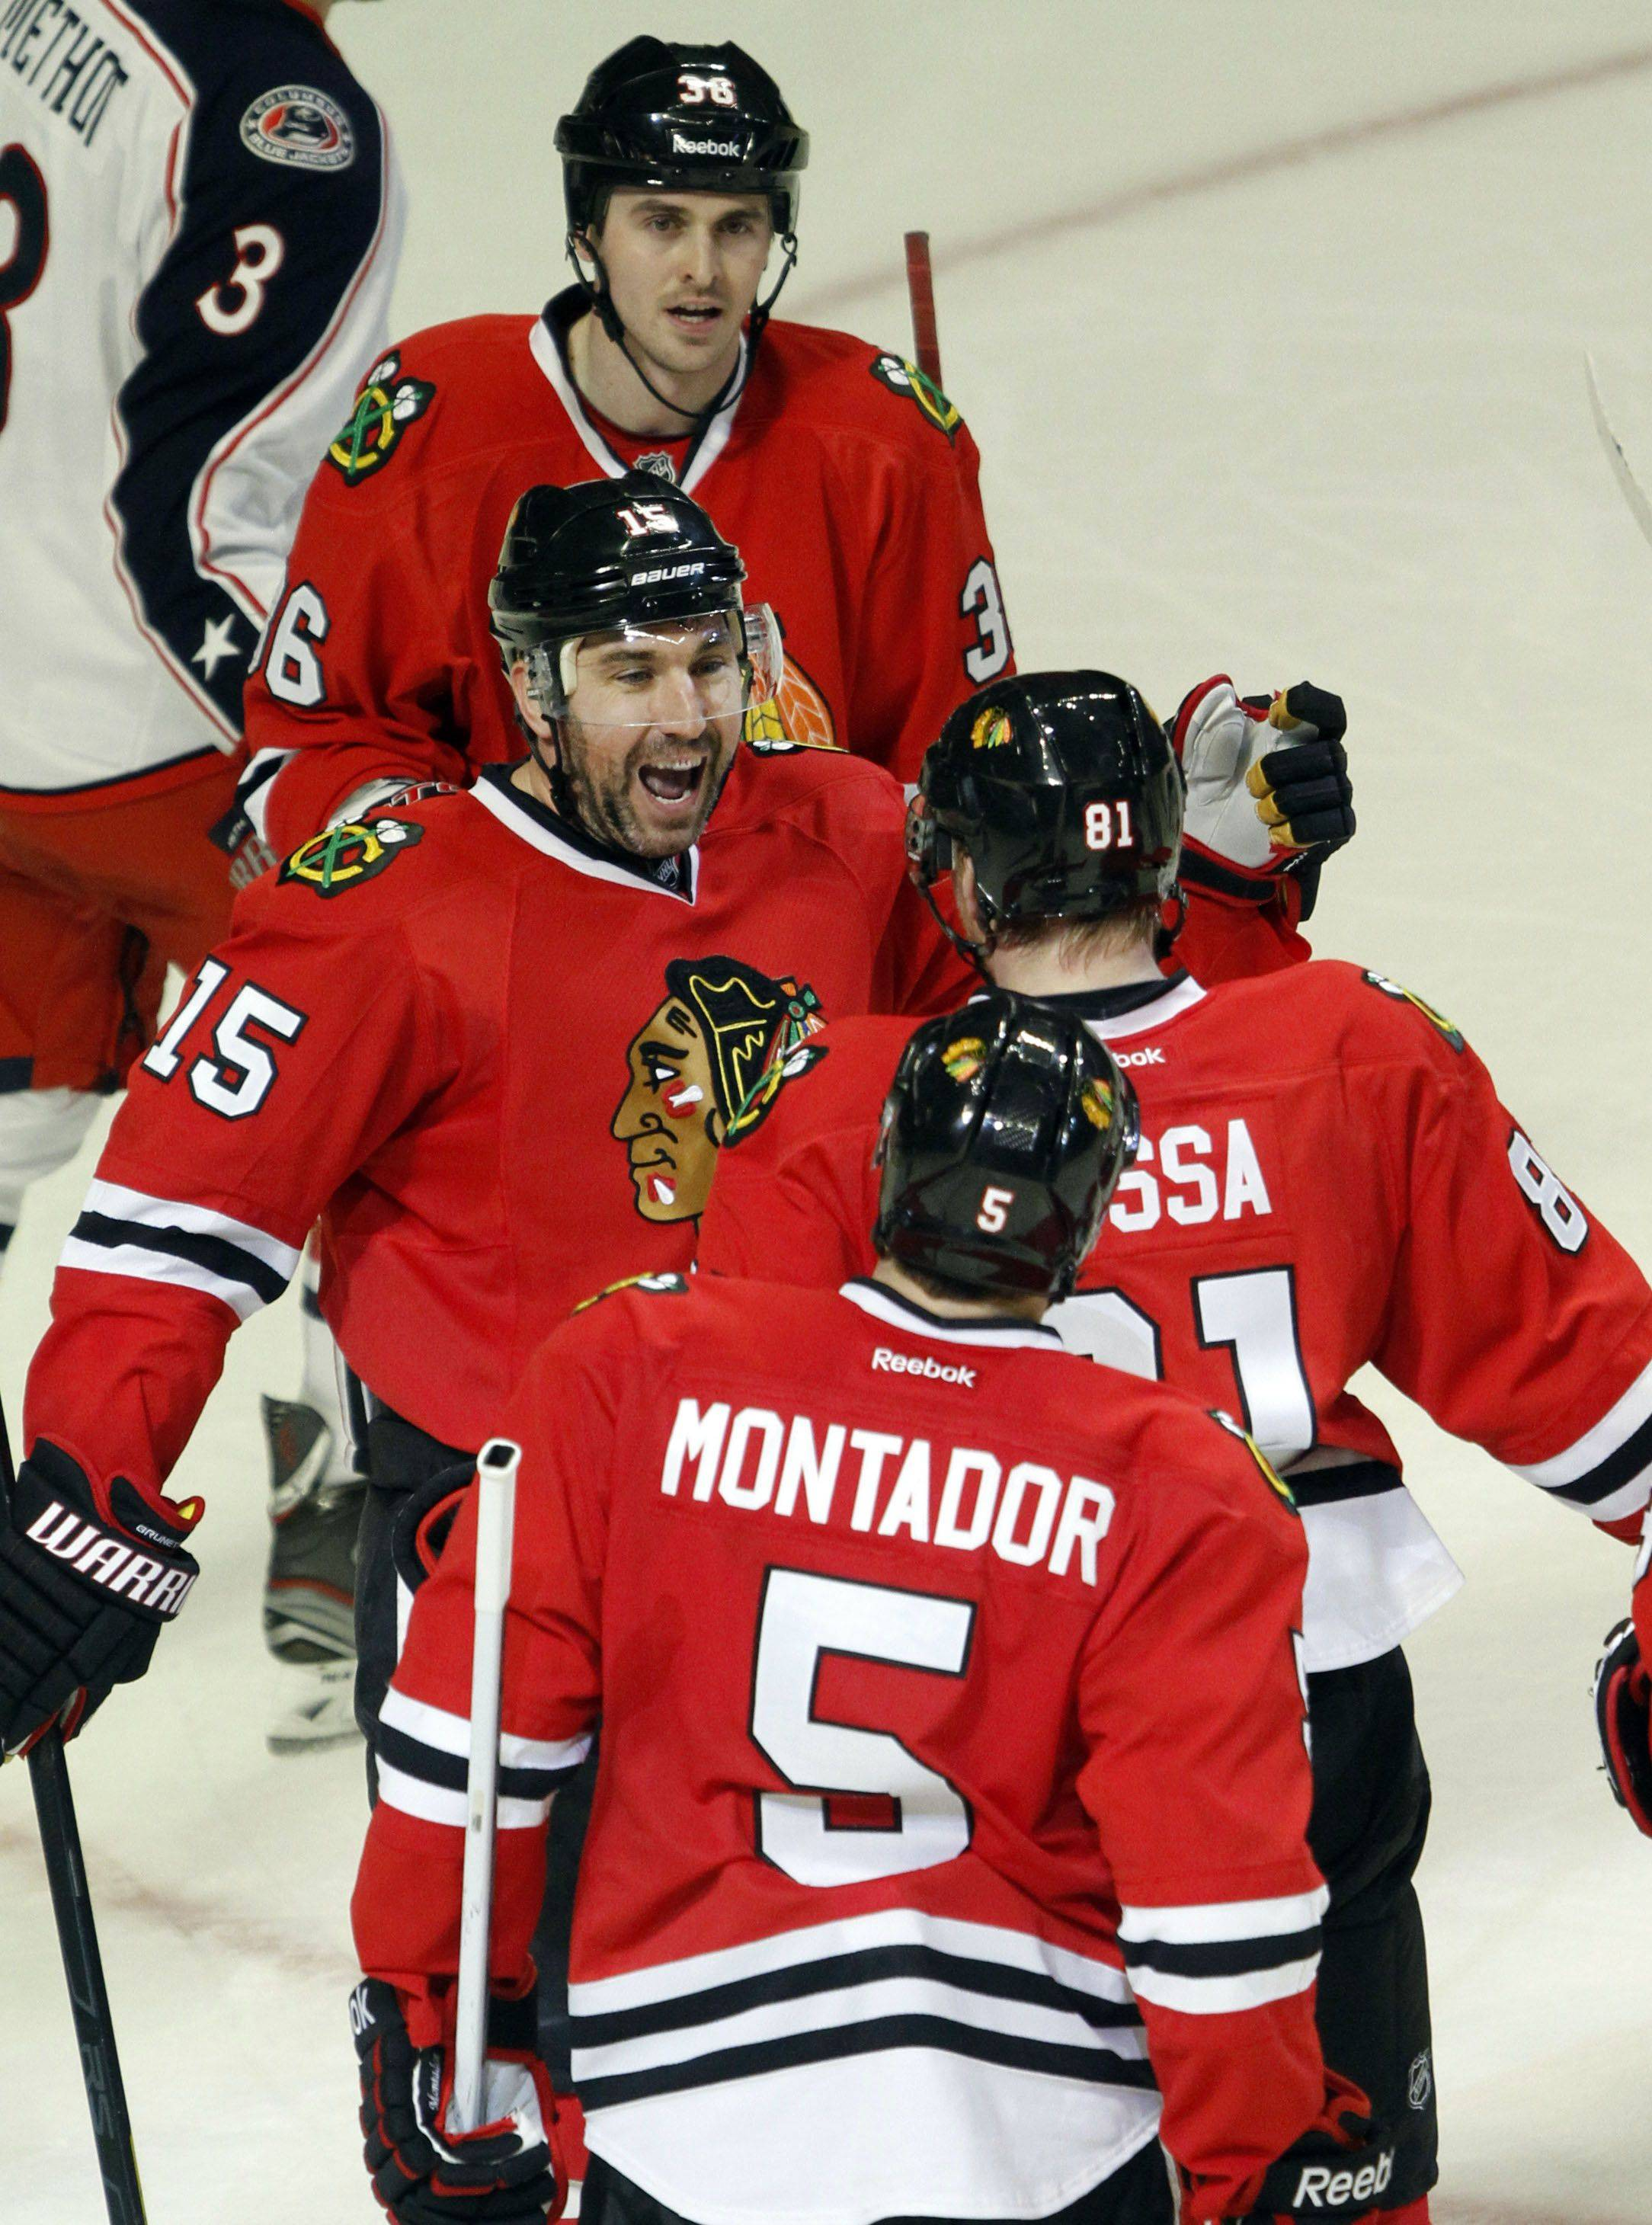 Chicago Blackhawks right wing Marian Hossa is congratulated by his teammates after scoring his goal second goal of the game during their game Monday night at the United Center in Chicago.